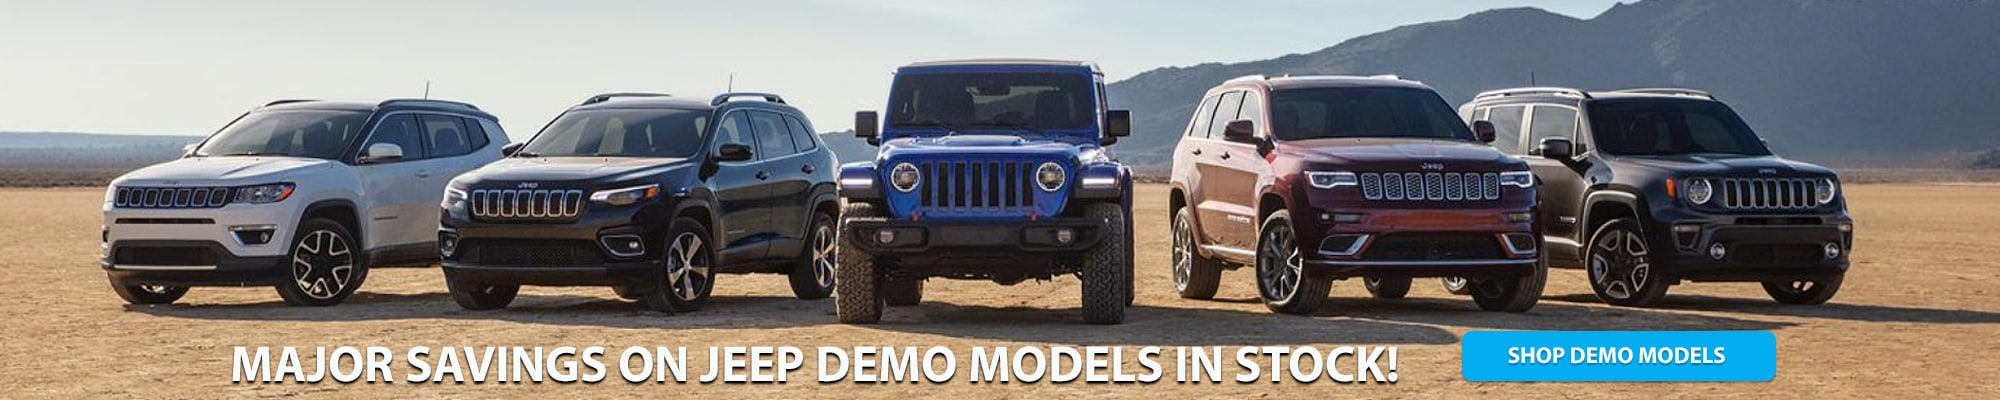 Jeep Deals in Denver